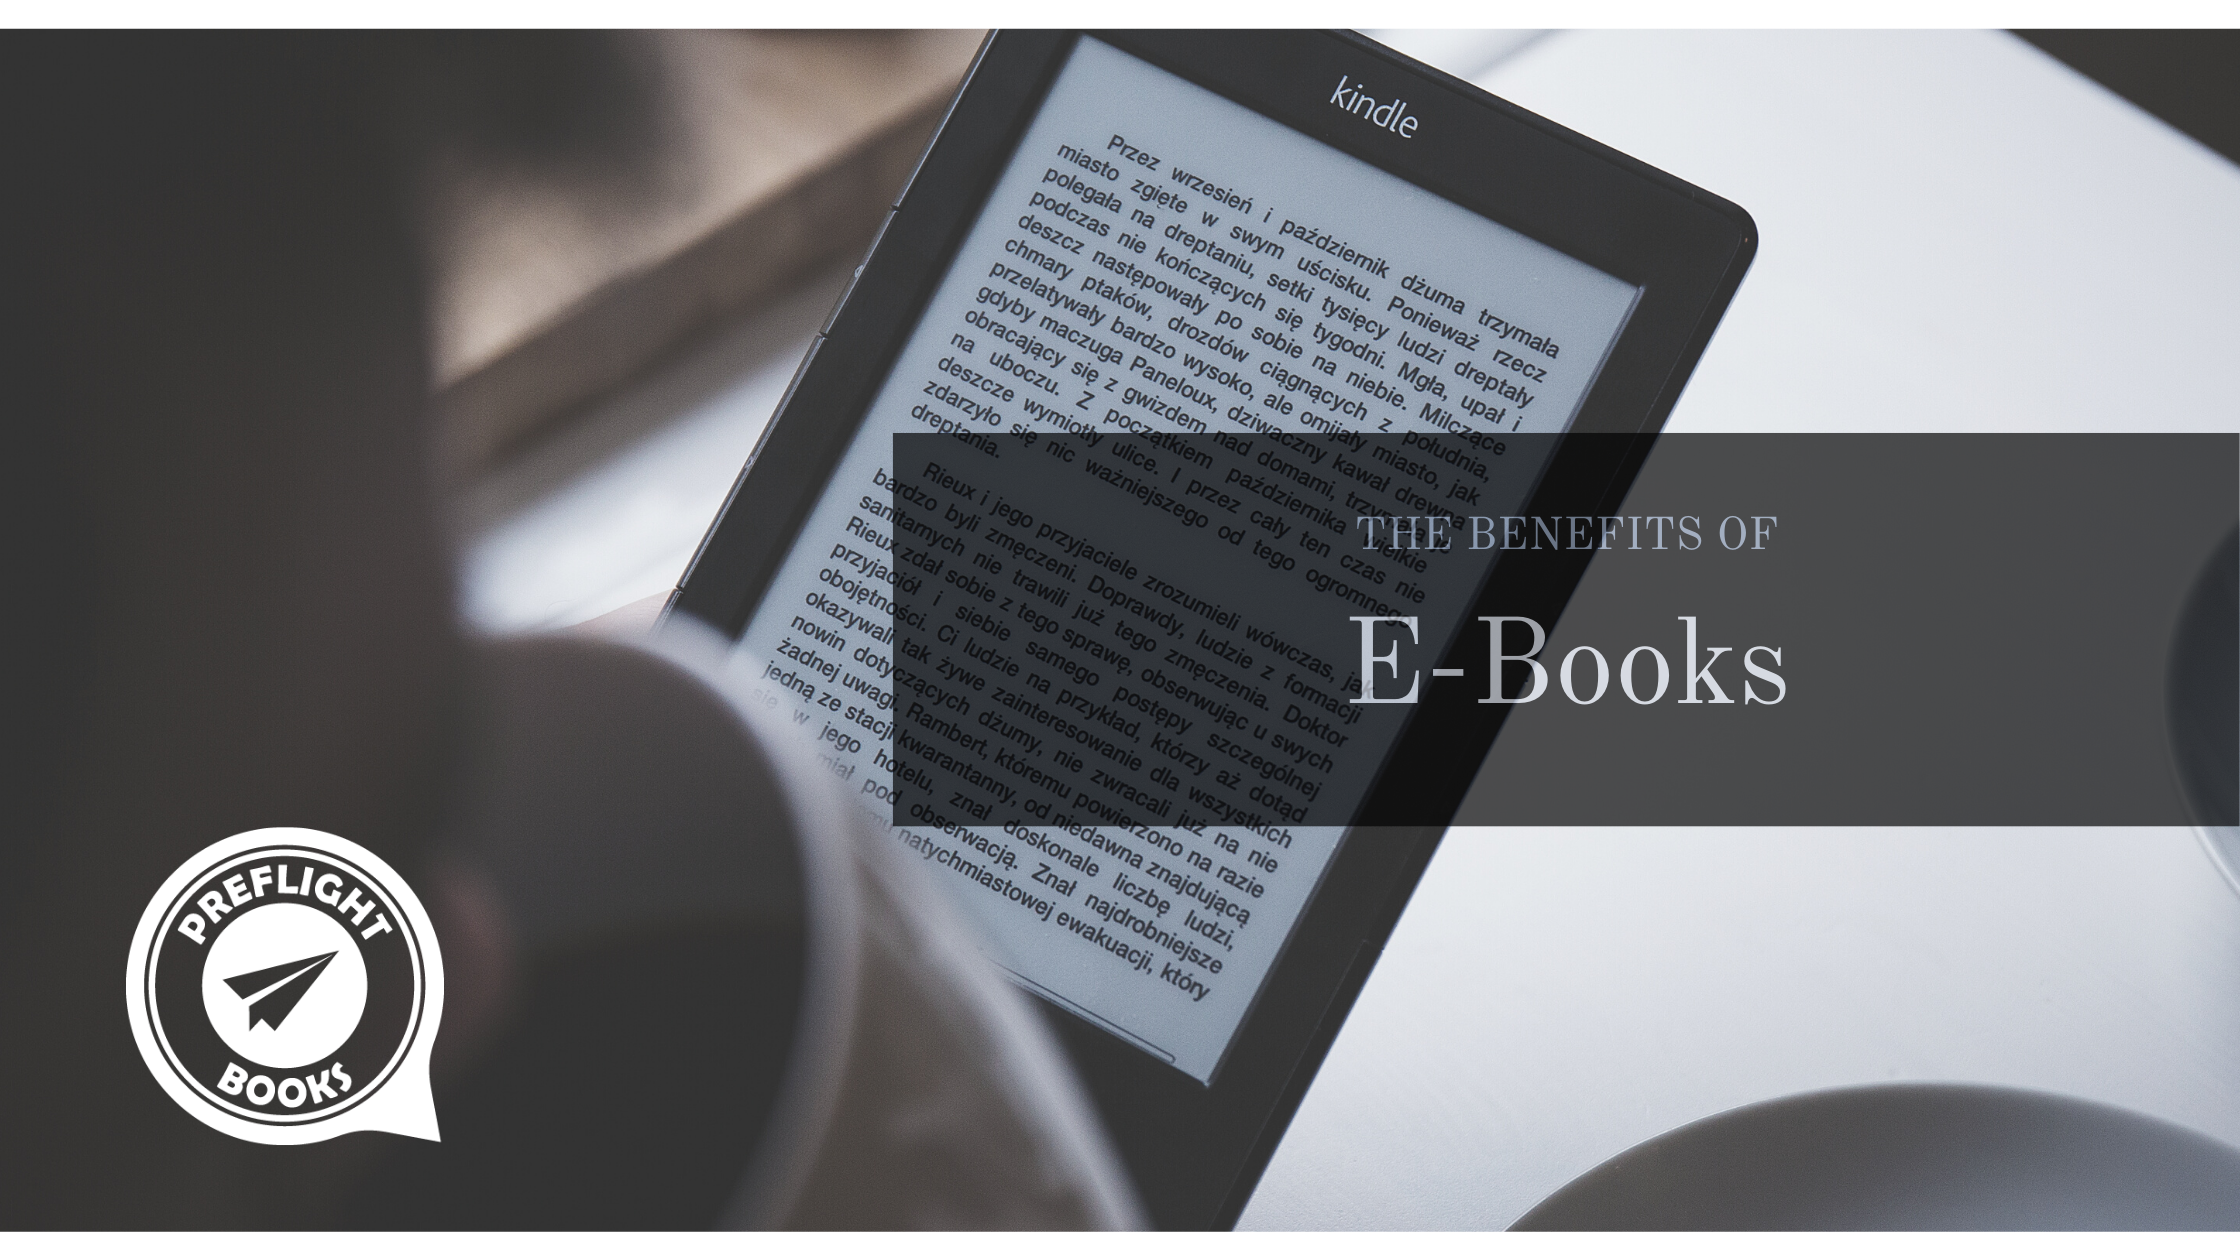 The Benefits of E-Books